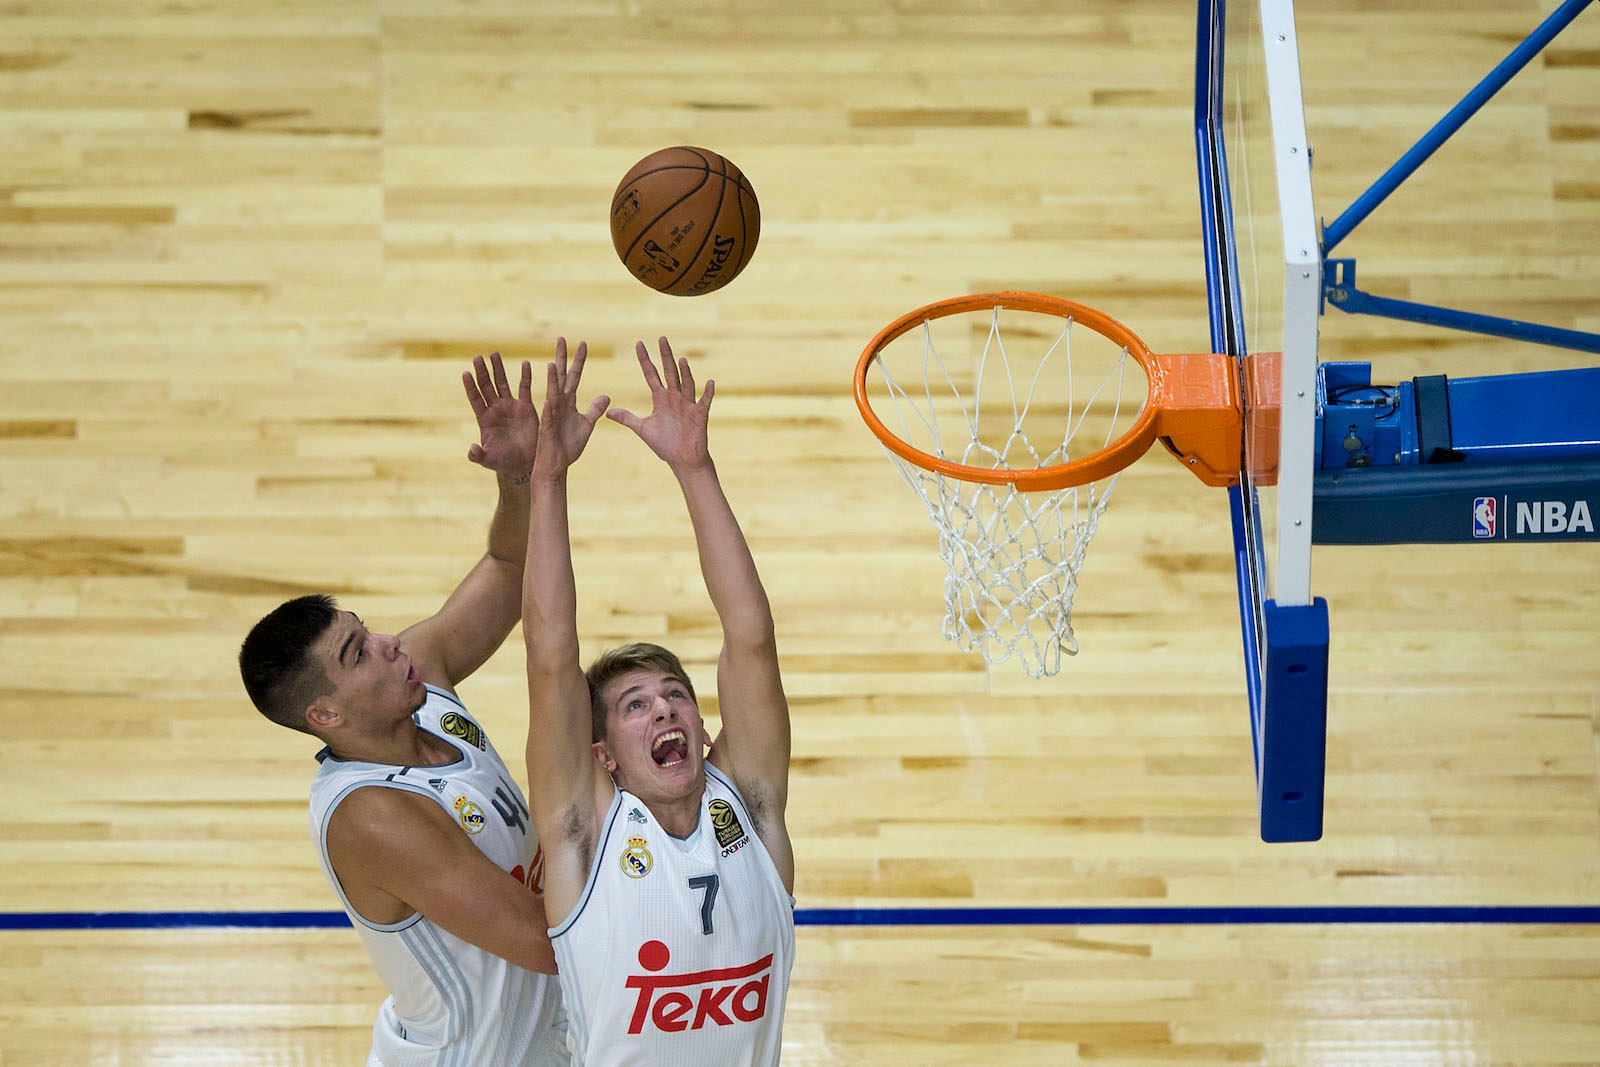 Luka Doncic (R) of Real Madrid and his teammate Guillermo Hernangomez (L) goes up for a rebound during the friendlies of the NBA Global Games 2015 basketball match between Real Madrid and Boston Celtics at Barclaycard Center on October 8, 2015 in Madrid, Spain.